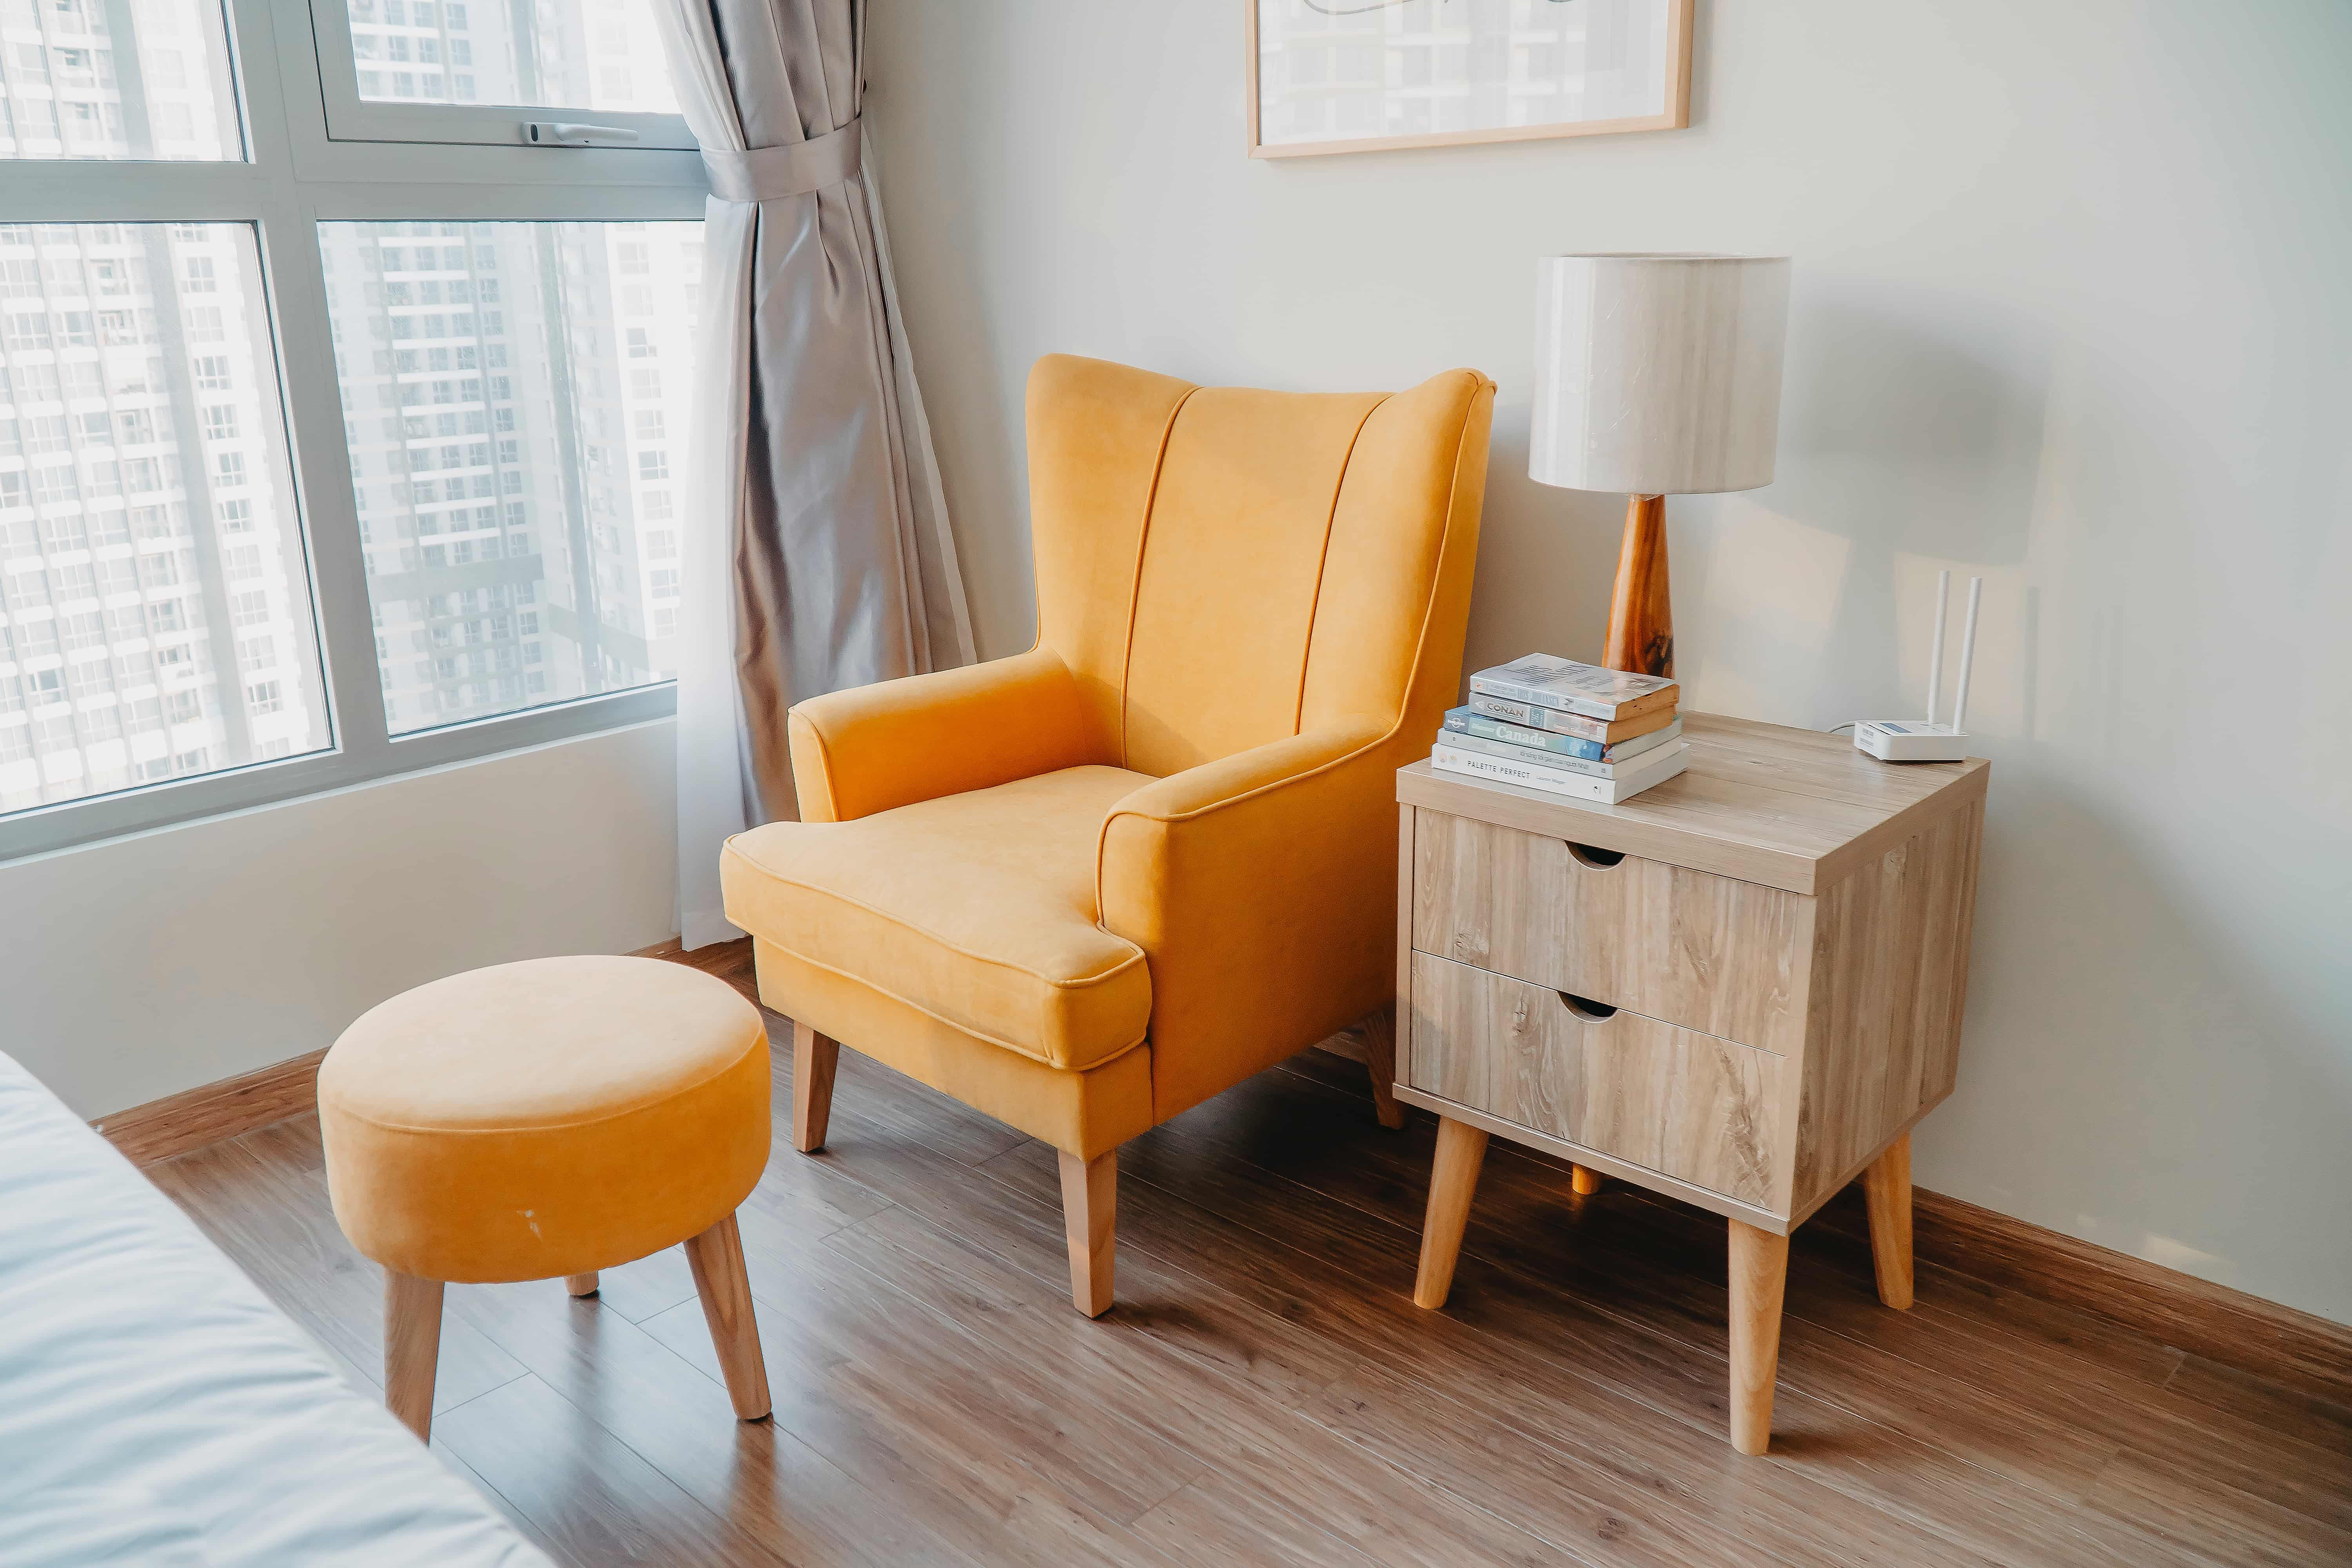 used furniture for sale by owner